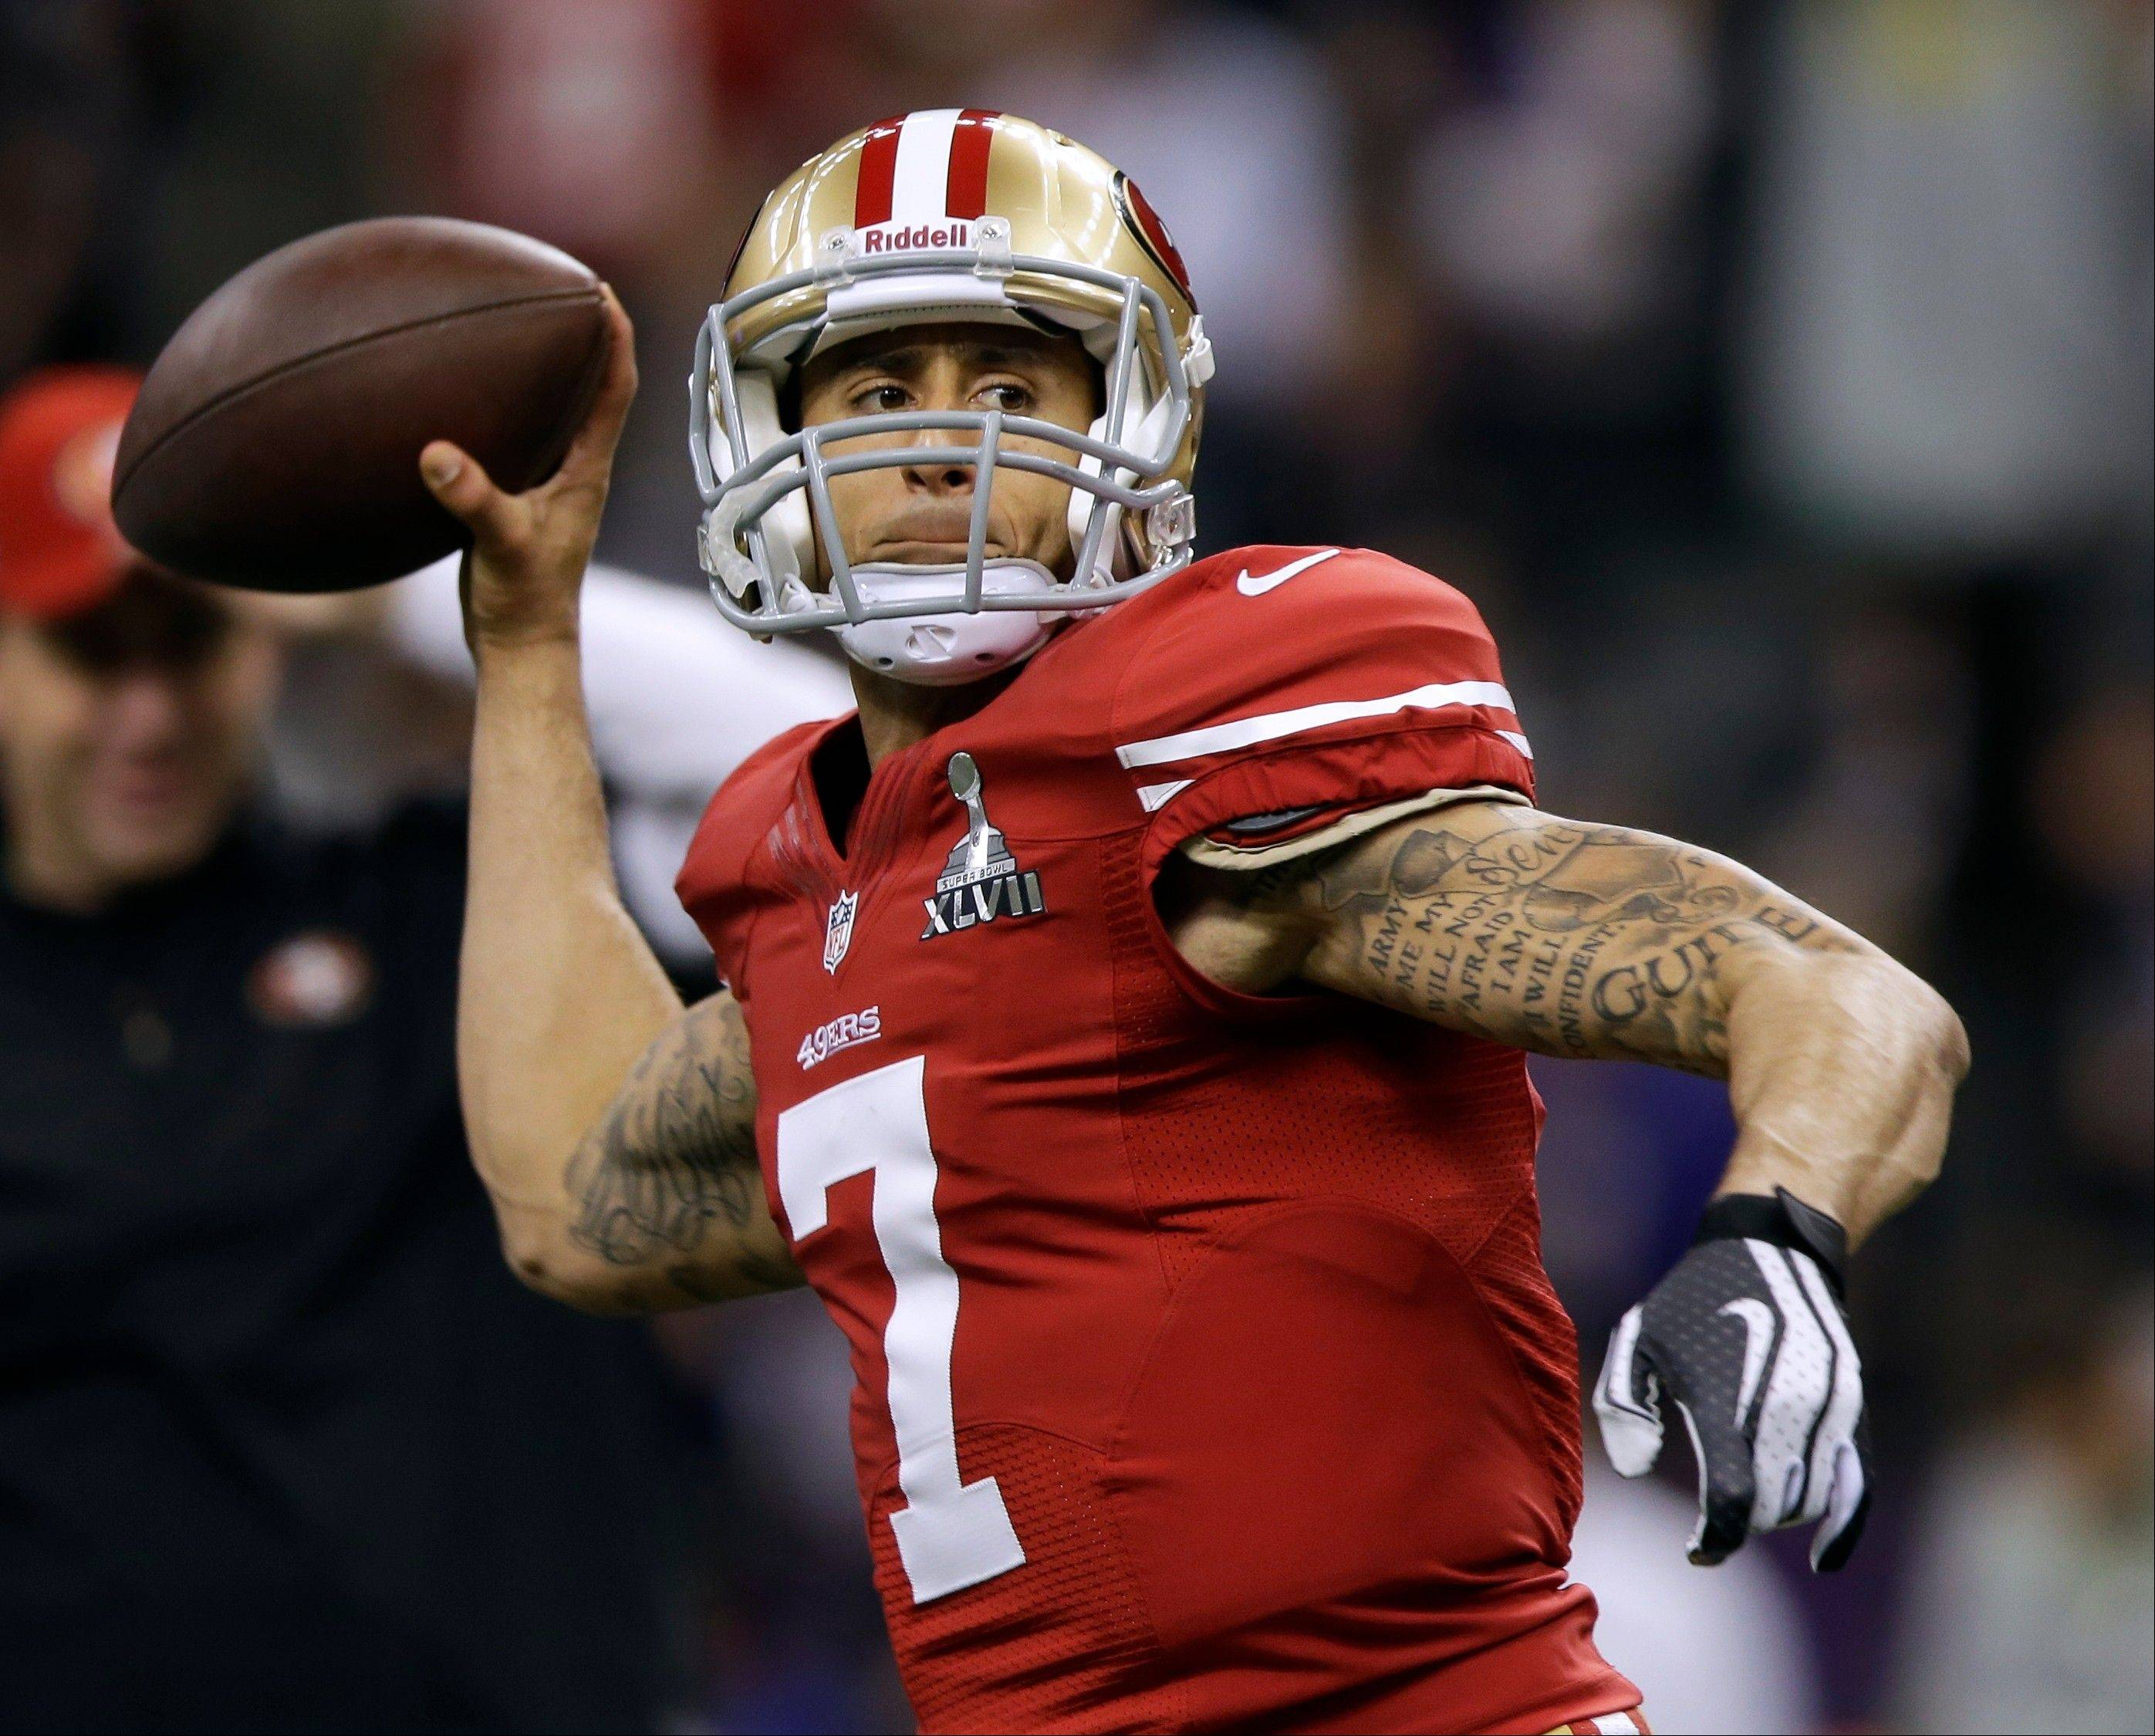 San Francisco 49ers quarterback Colin Kaepernick hasn't started a full NFL season, yet he took his team to the Super Bowl.